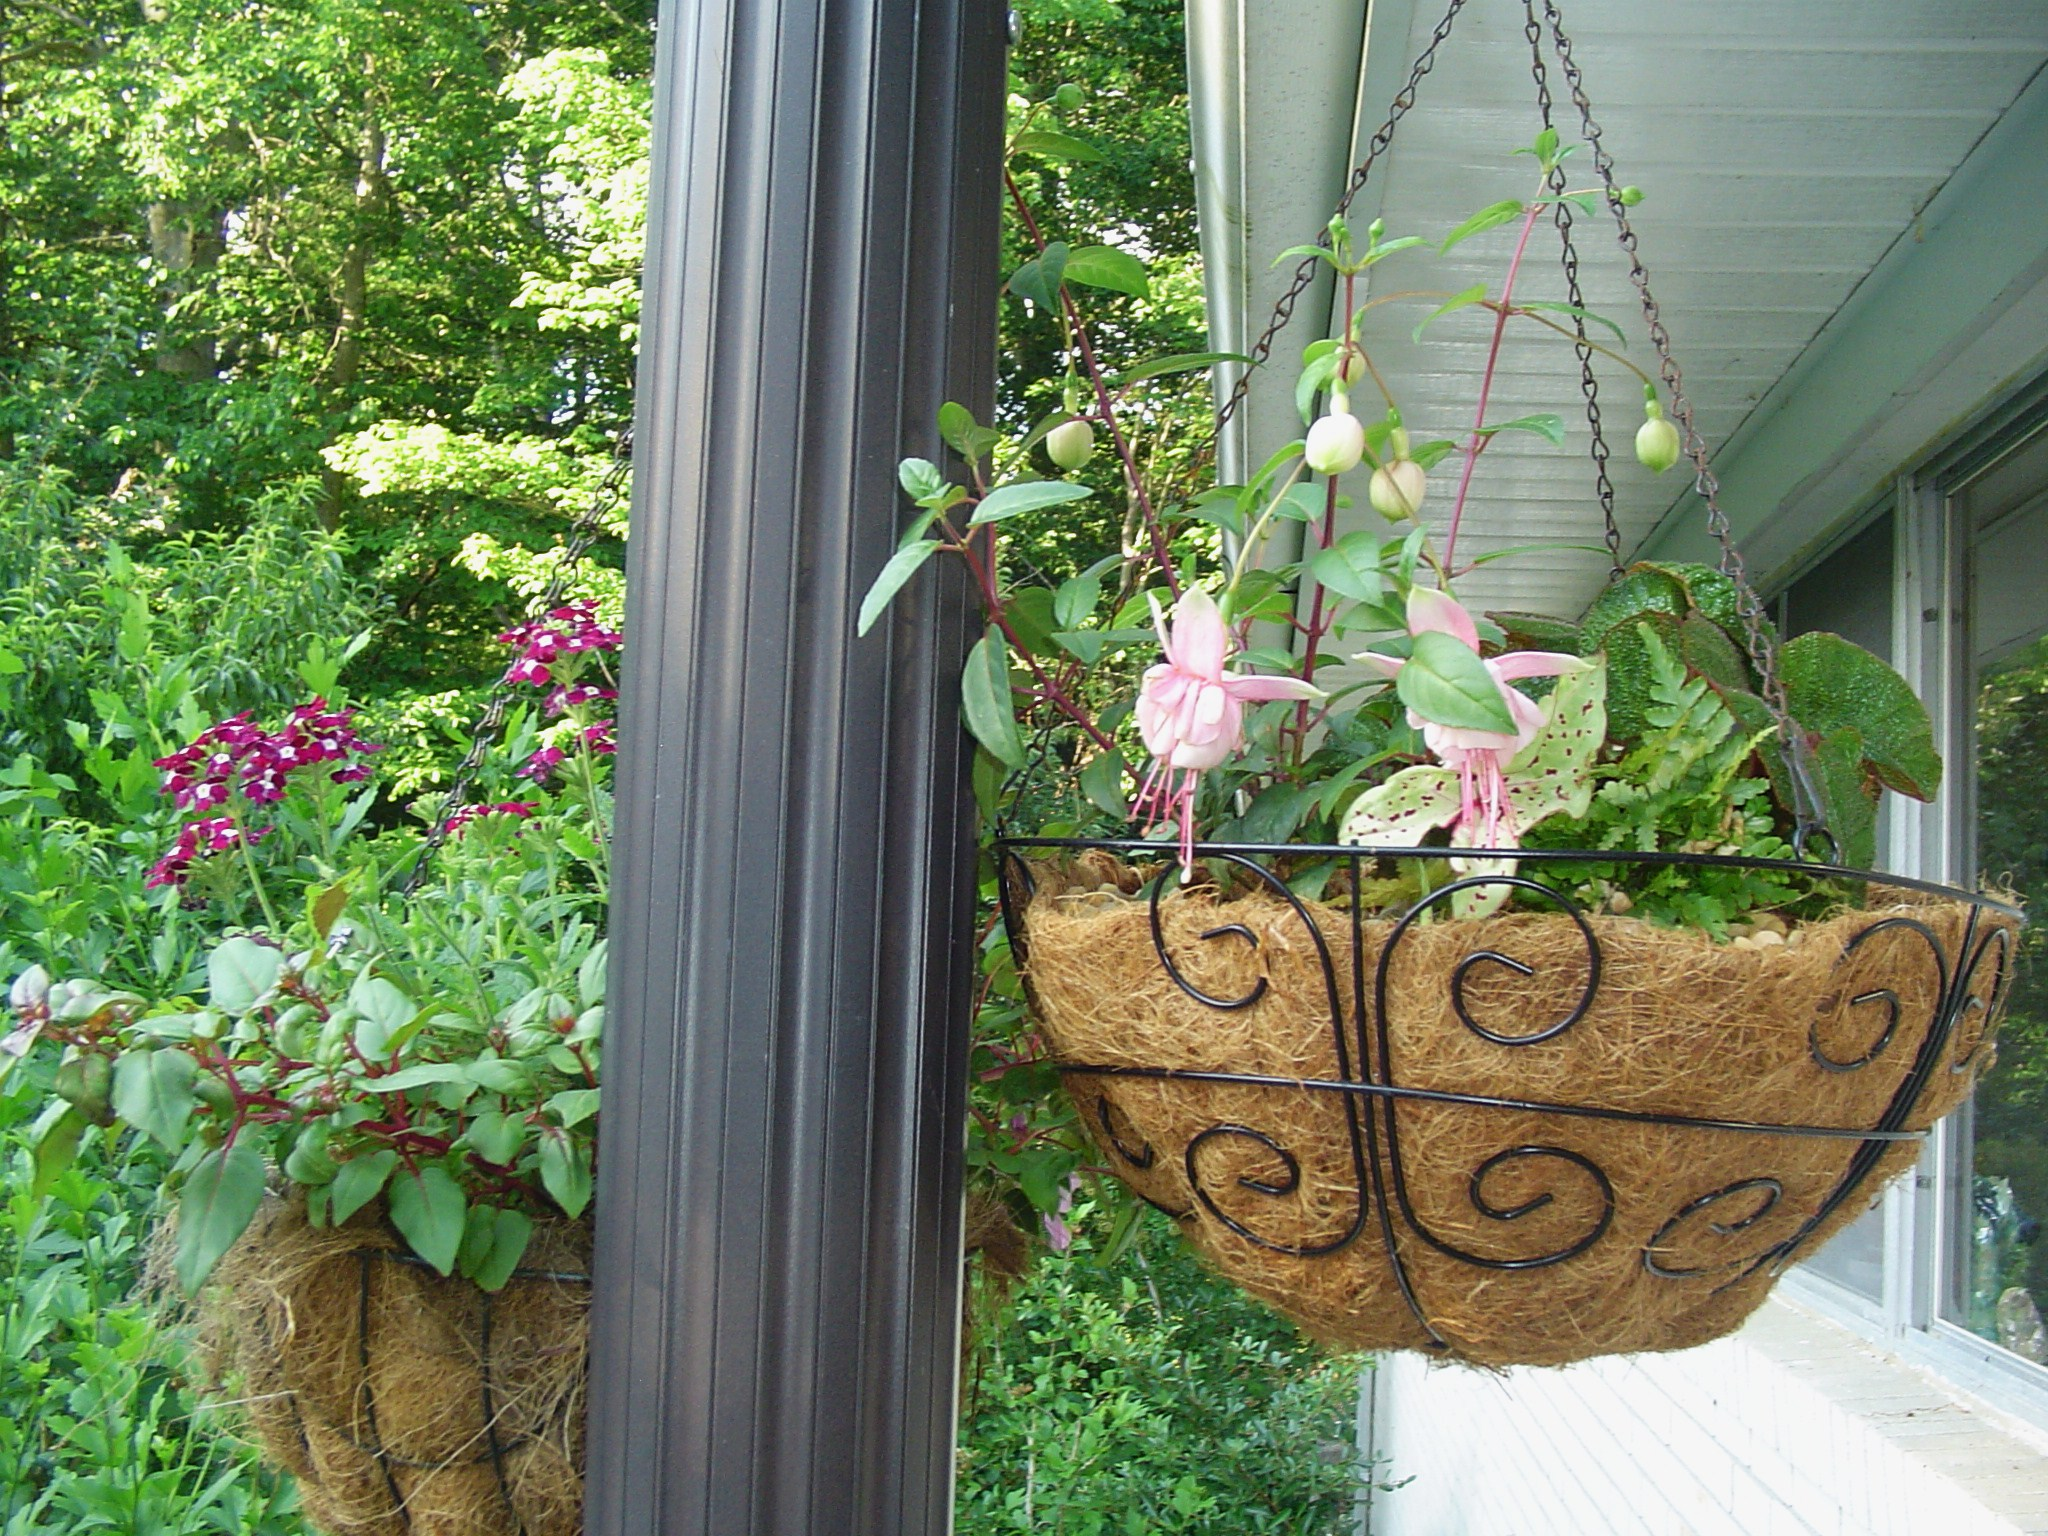 Flowers For Hanging Baskets That Attract Hummingbirds : Hummingbird and butterfly garden forest